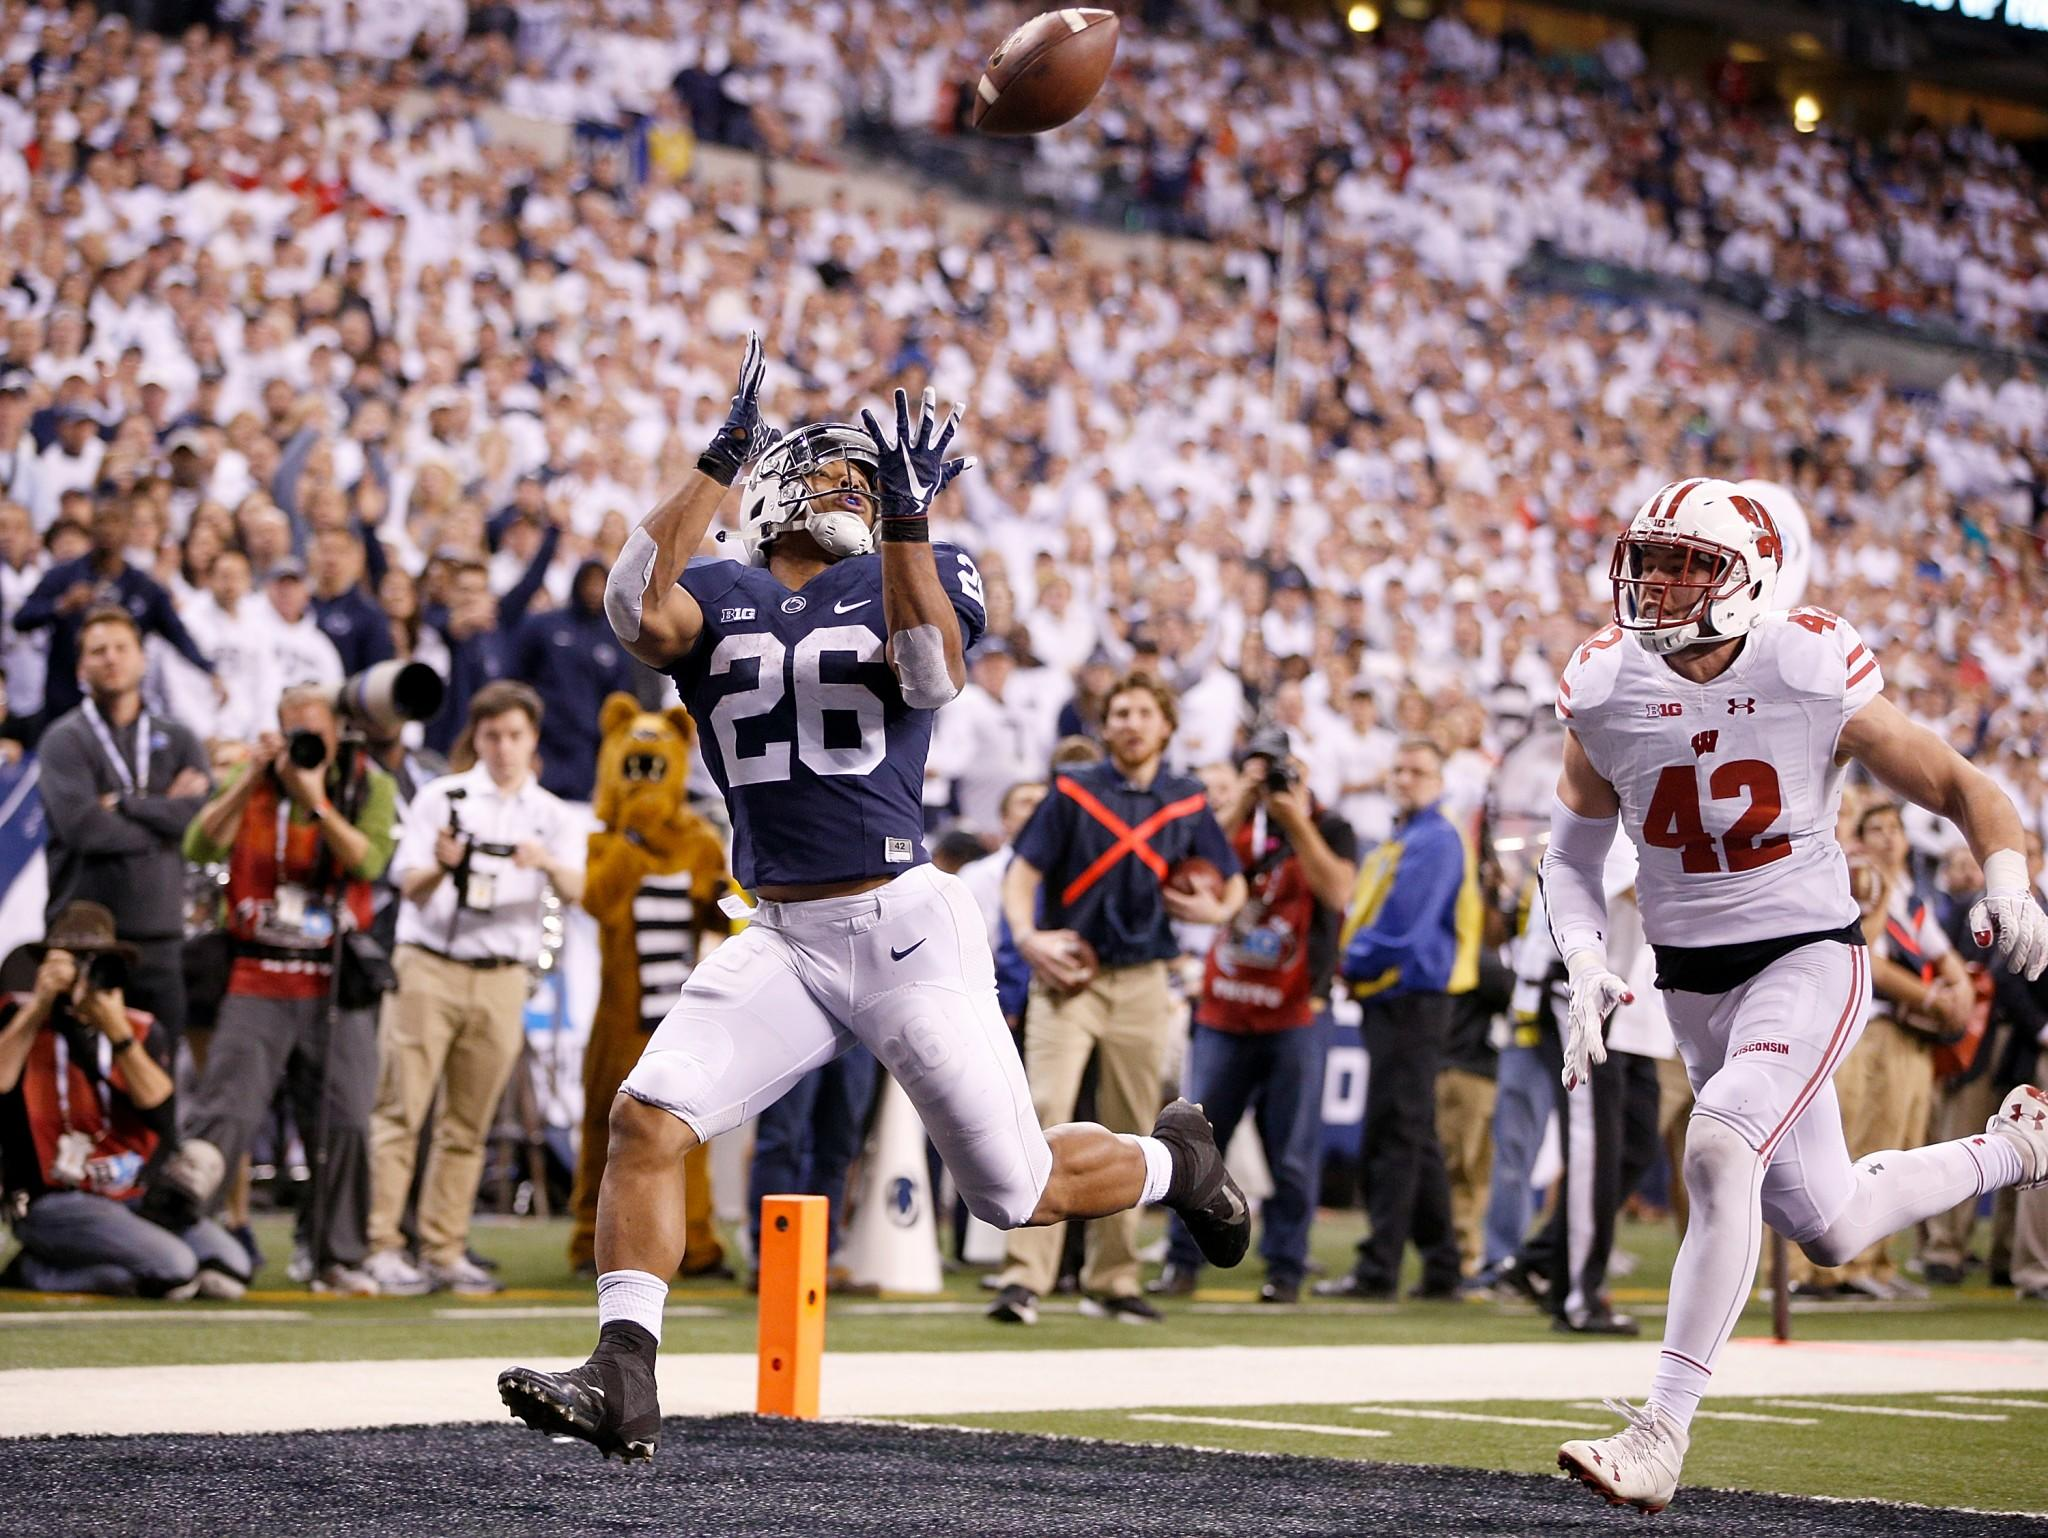 Penn State's furious comeback in Big Ten title game sets up CFP dilemma